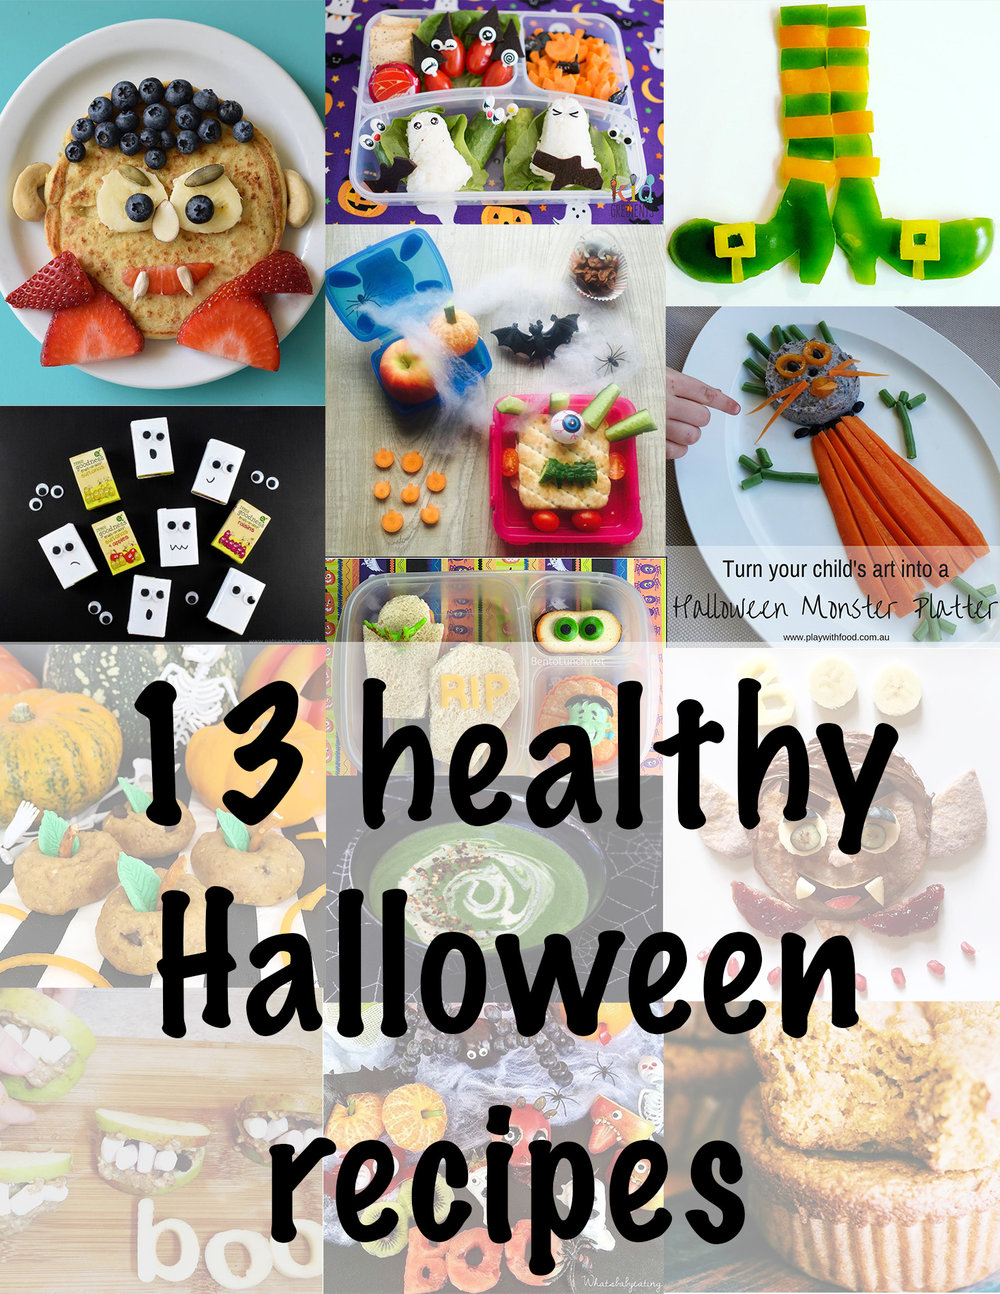 Healthy-Halloween-recipes-for-kids